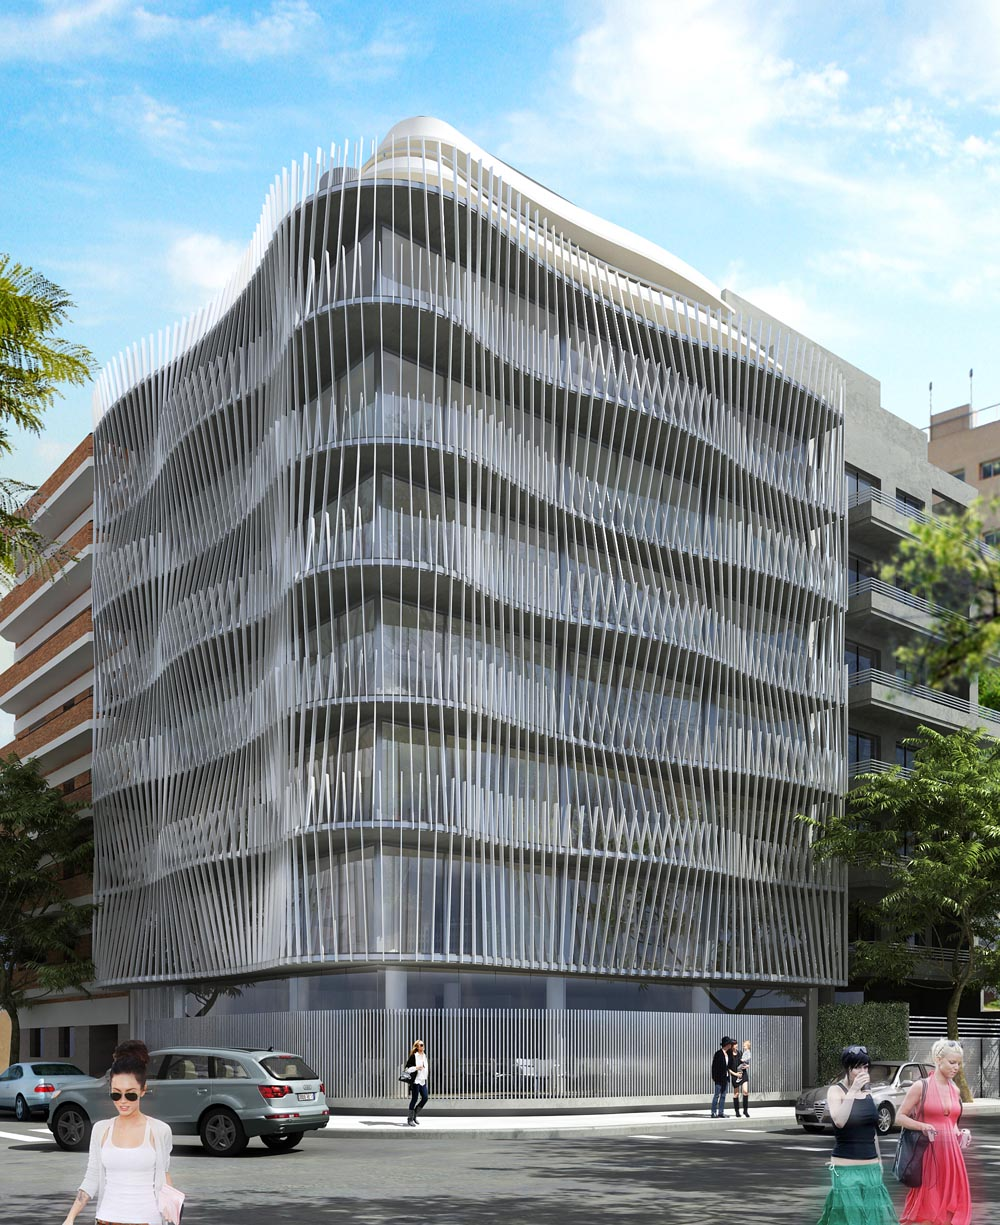 Empresas el edificio de oficinas hit3 re ne tendencias de for Fachadas de edificios de oficinas